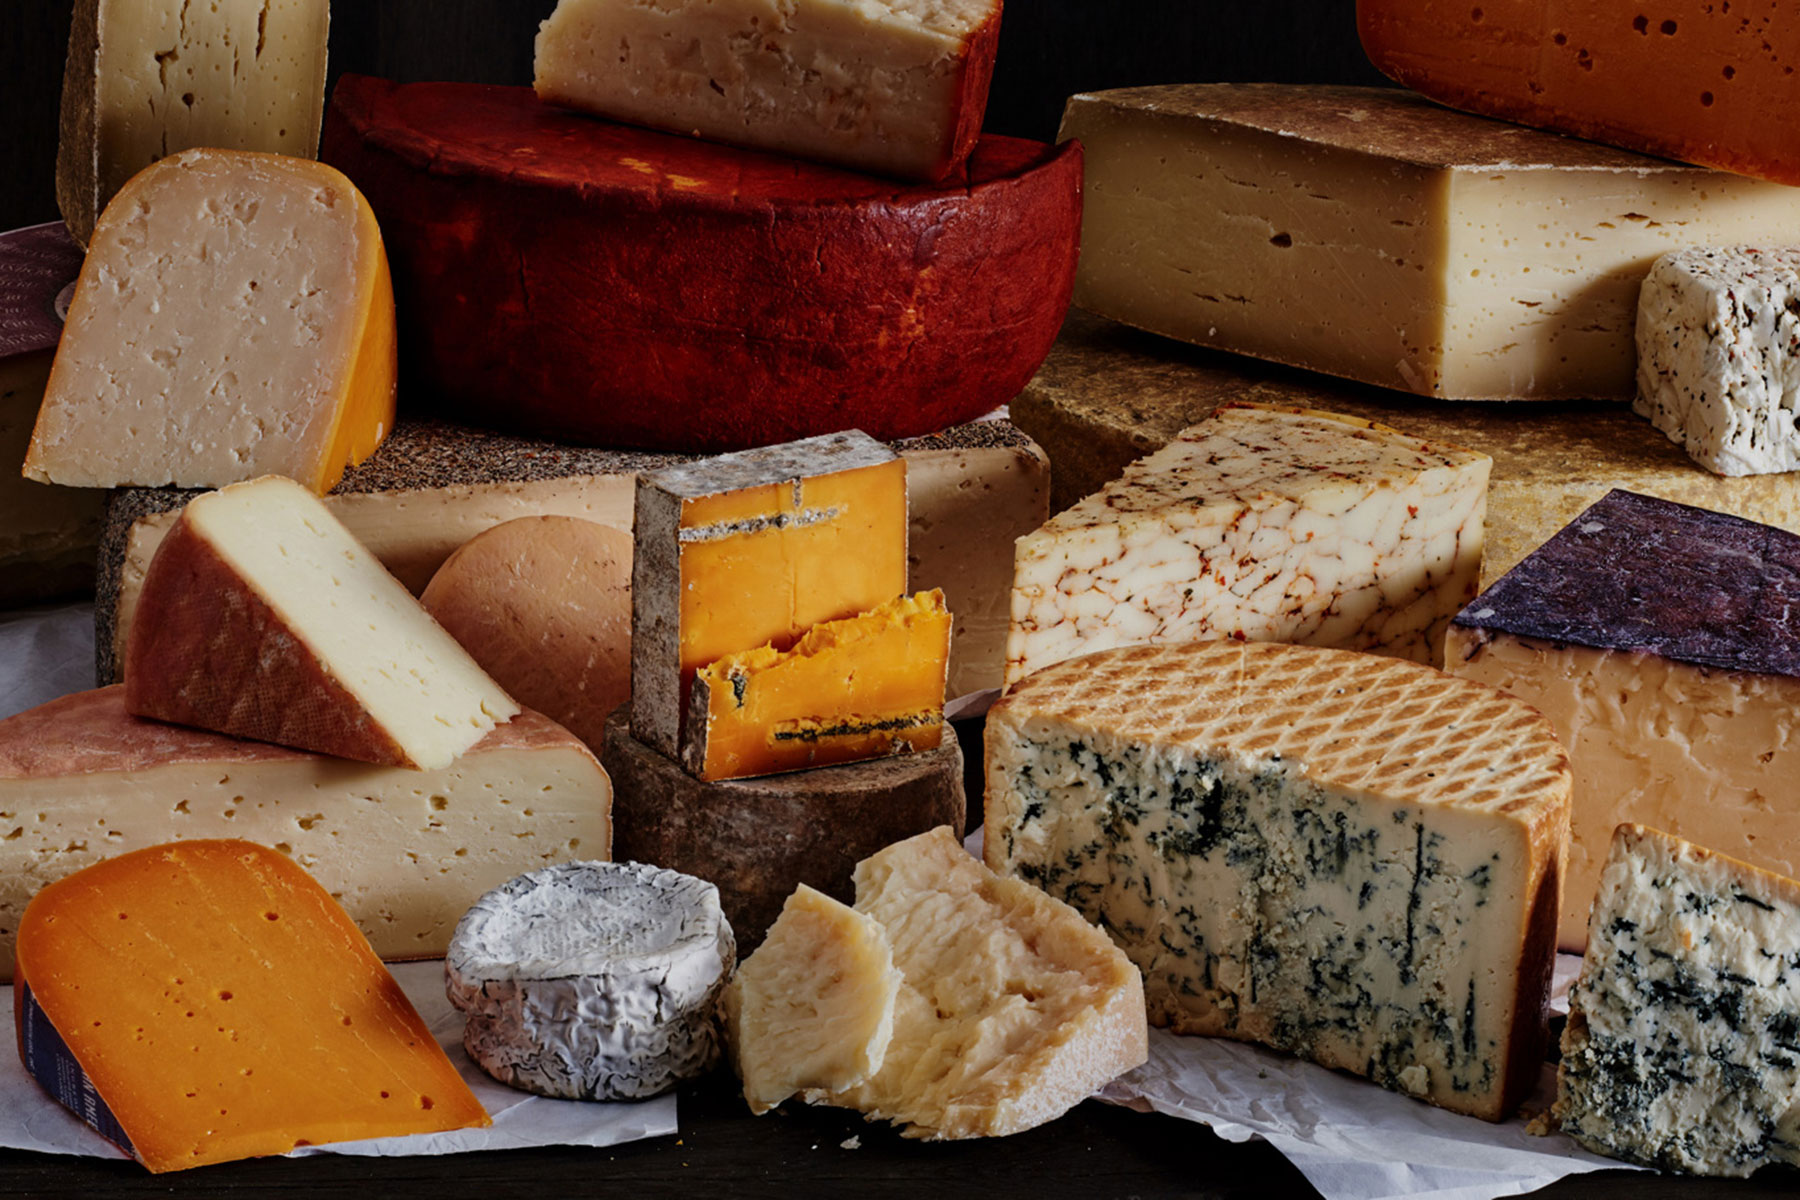 cheese wisconsin take american cheesemakers state awards country oscars ribbons acs competition milwaukee 14th consecutive captured than any